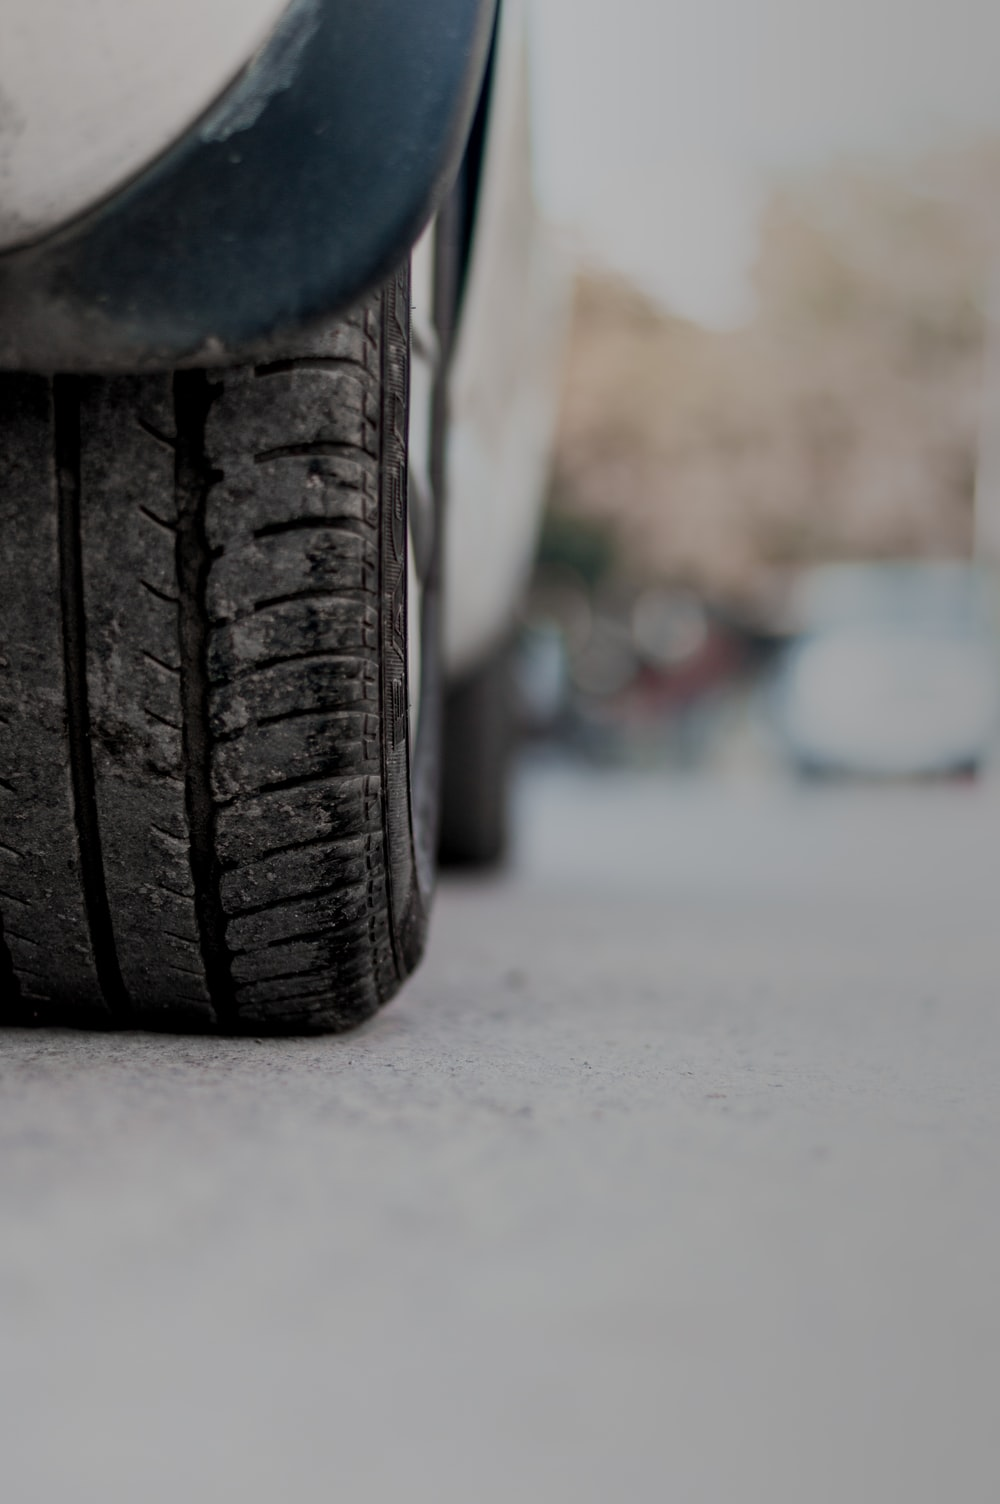 selevtive focus photography of vehicle tire